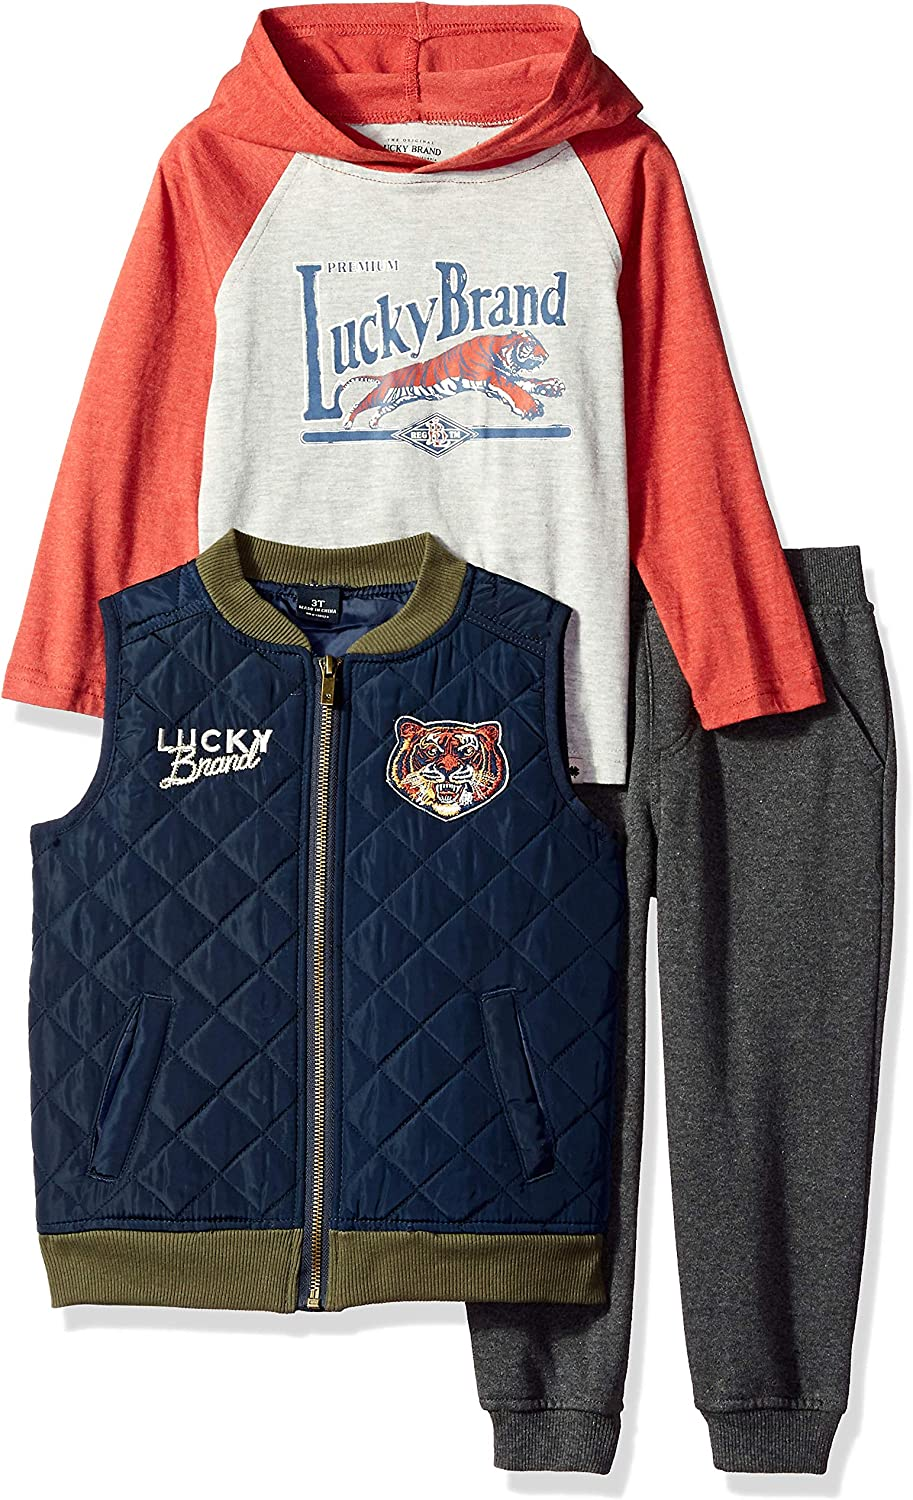 Lucky Brand Baby Boys 3 Pieces Vest Set, Navy/Charcoal/red, 12M